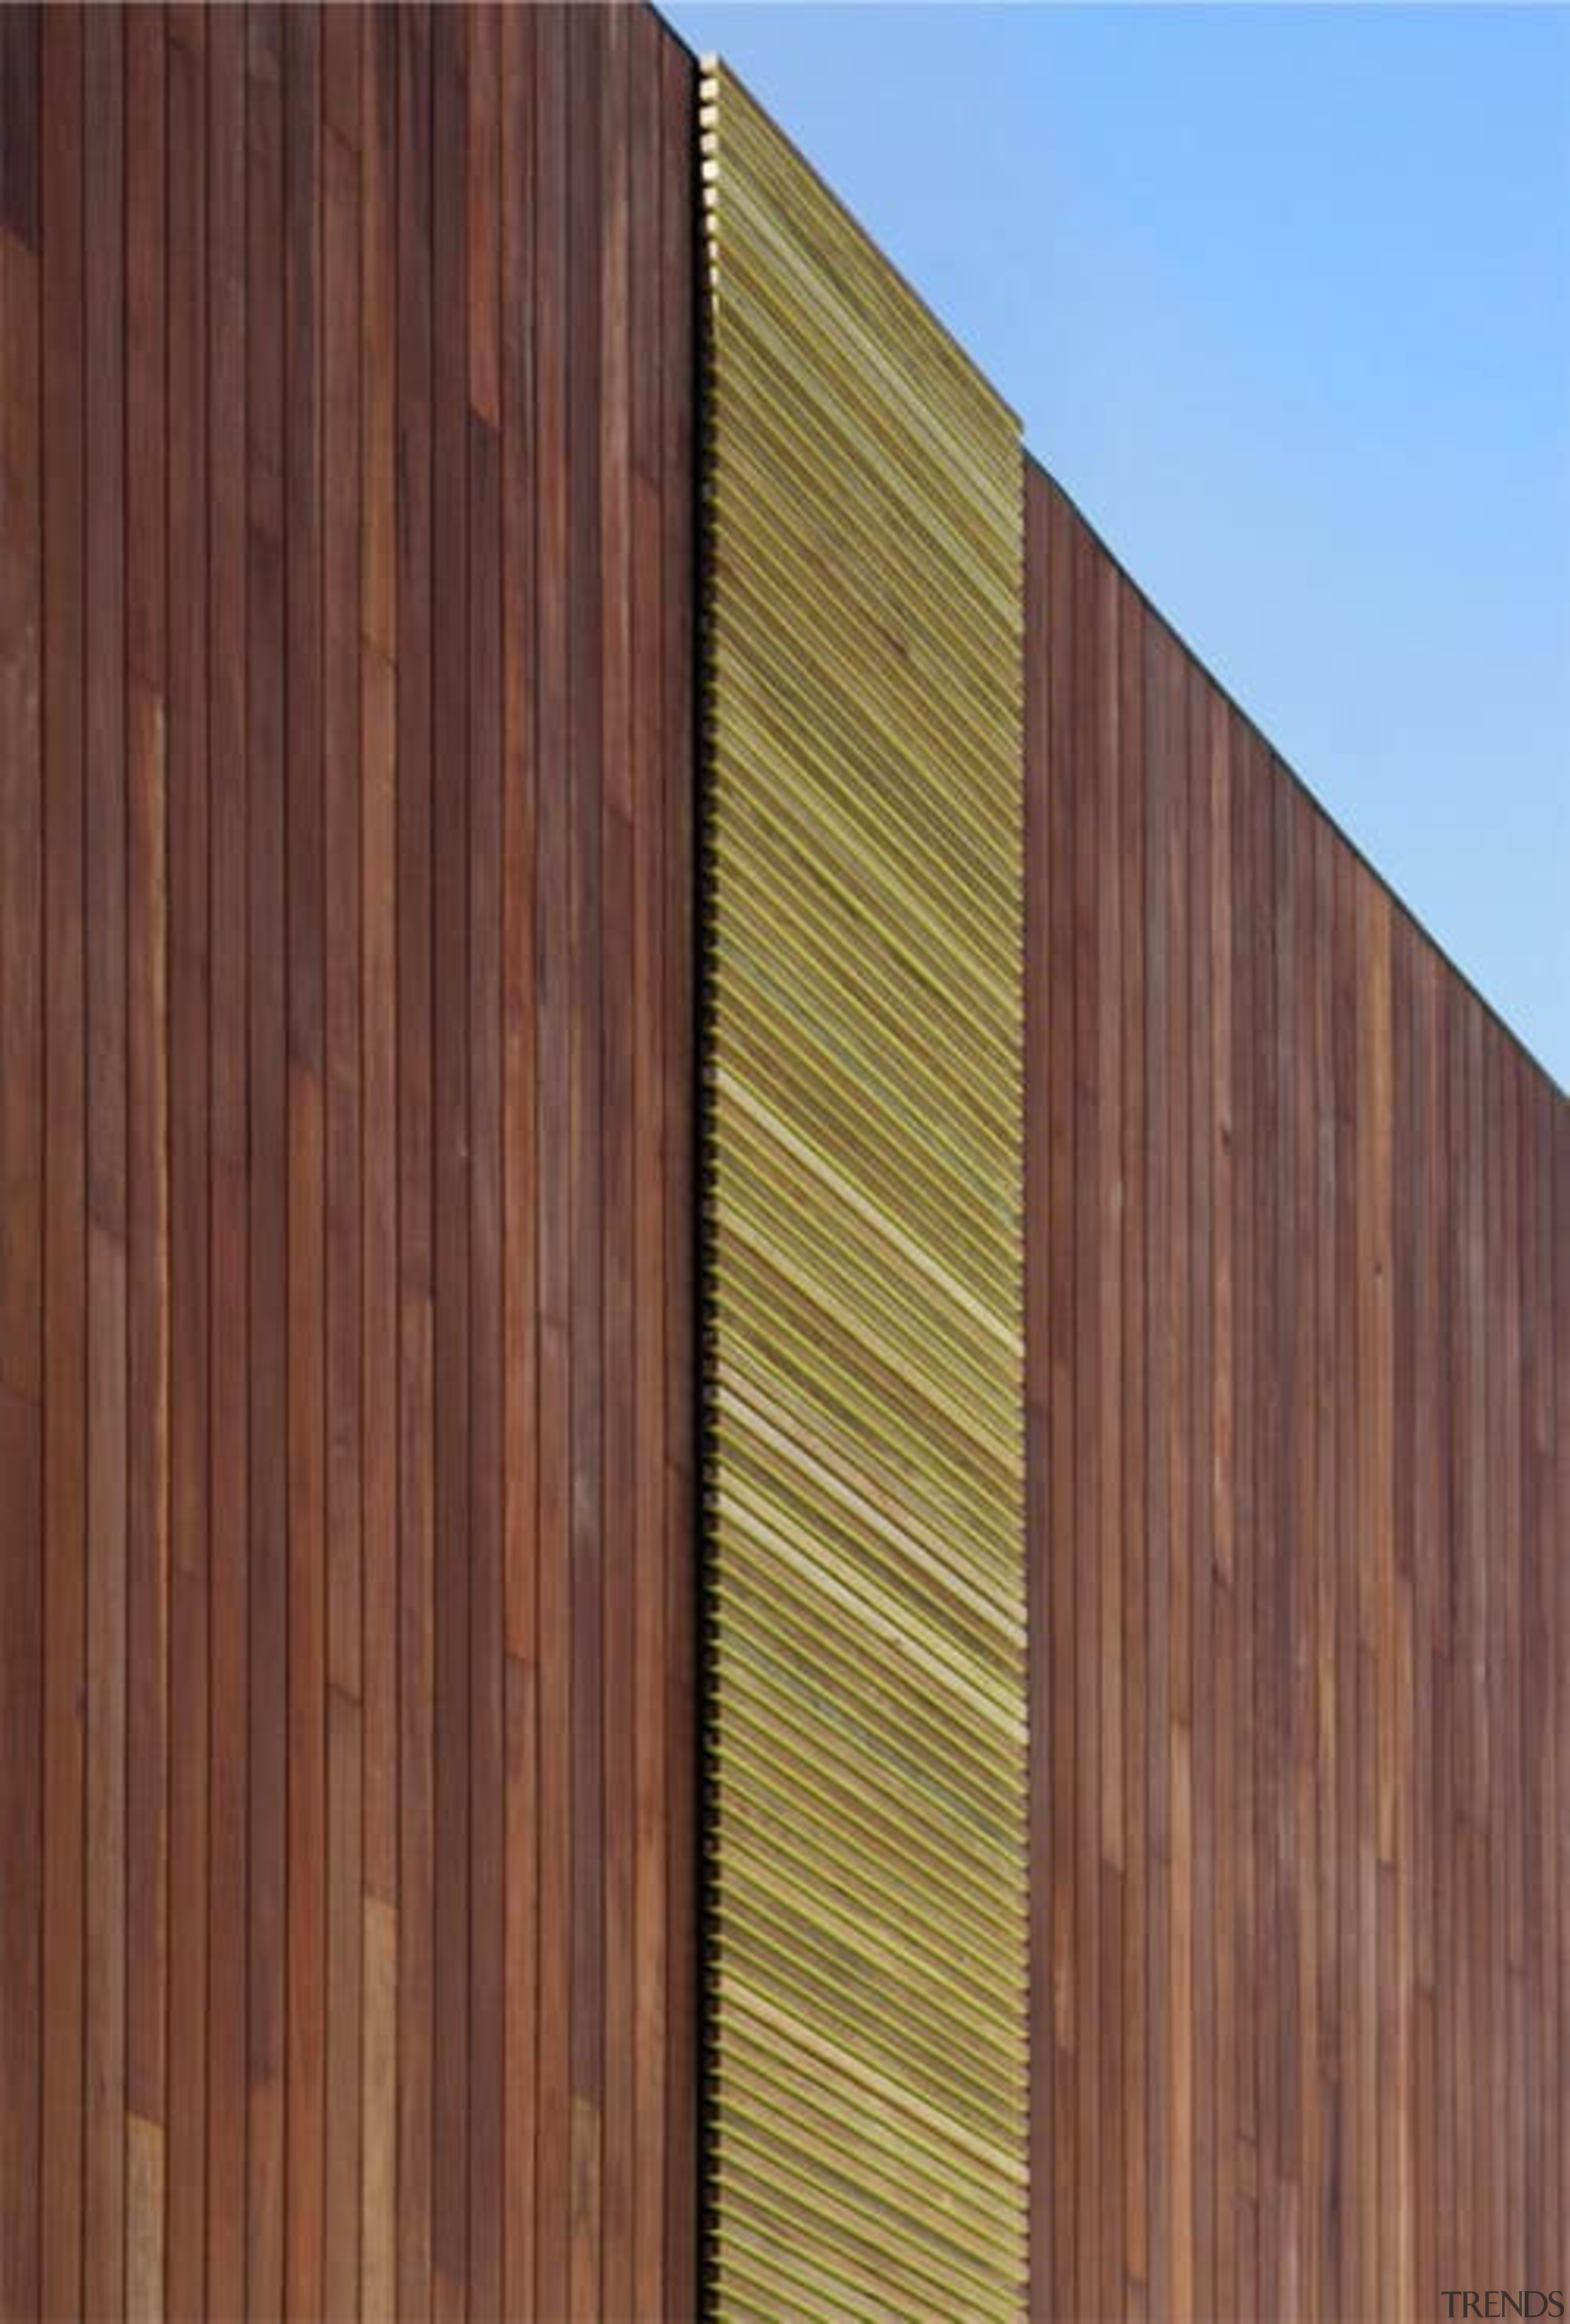 Another set of wood panels runs up the architecture, facade, hardwood, line, lumber, plywood, siding, wall, wood, wood stain, red